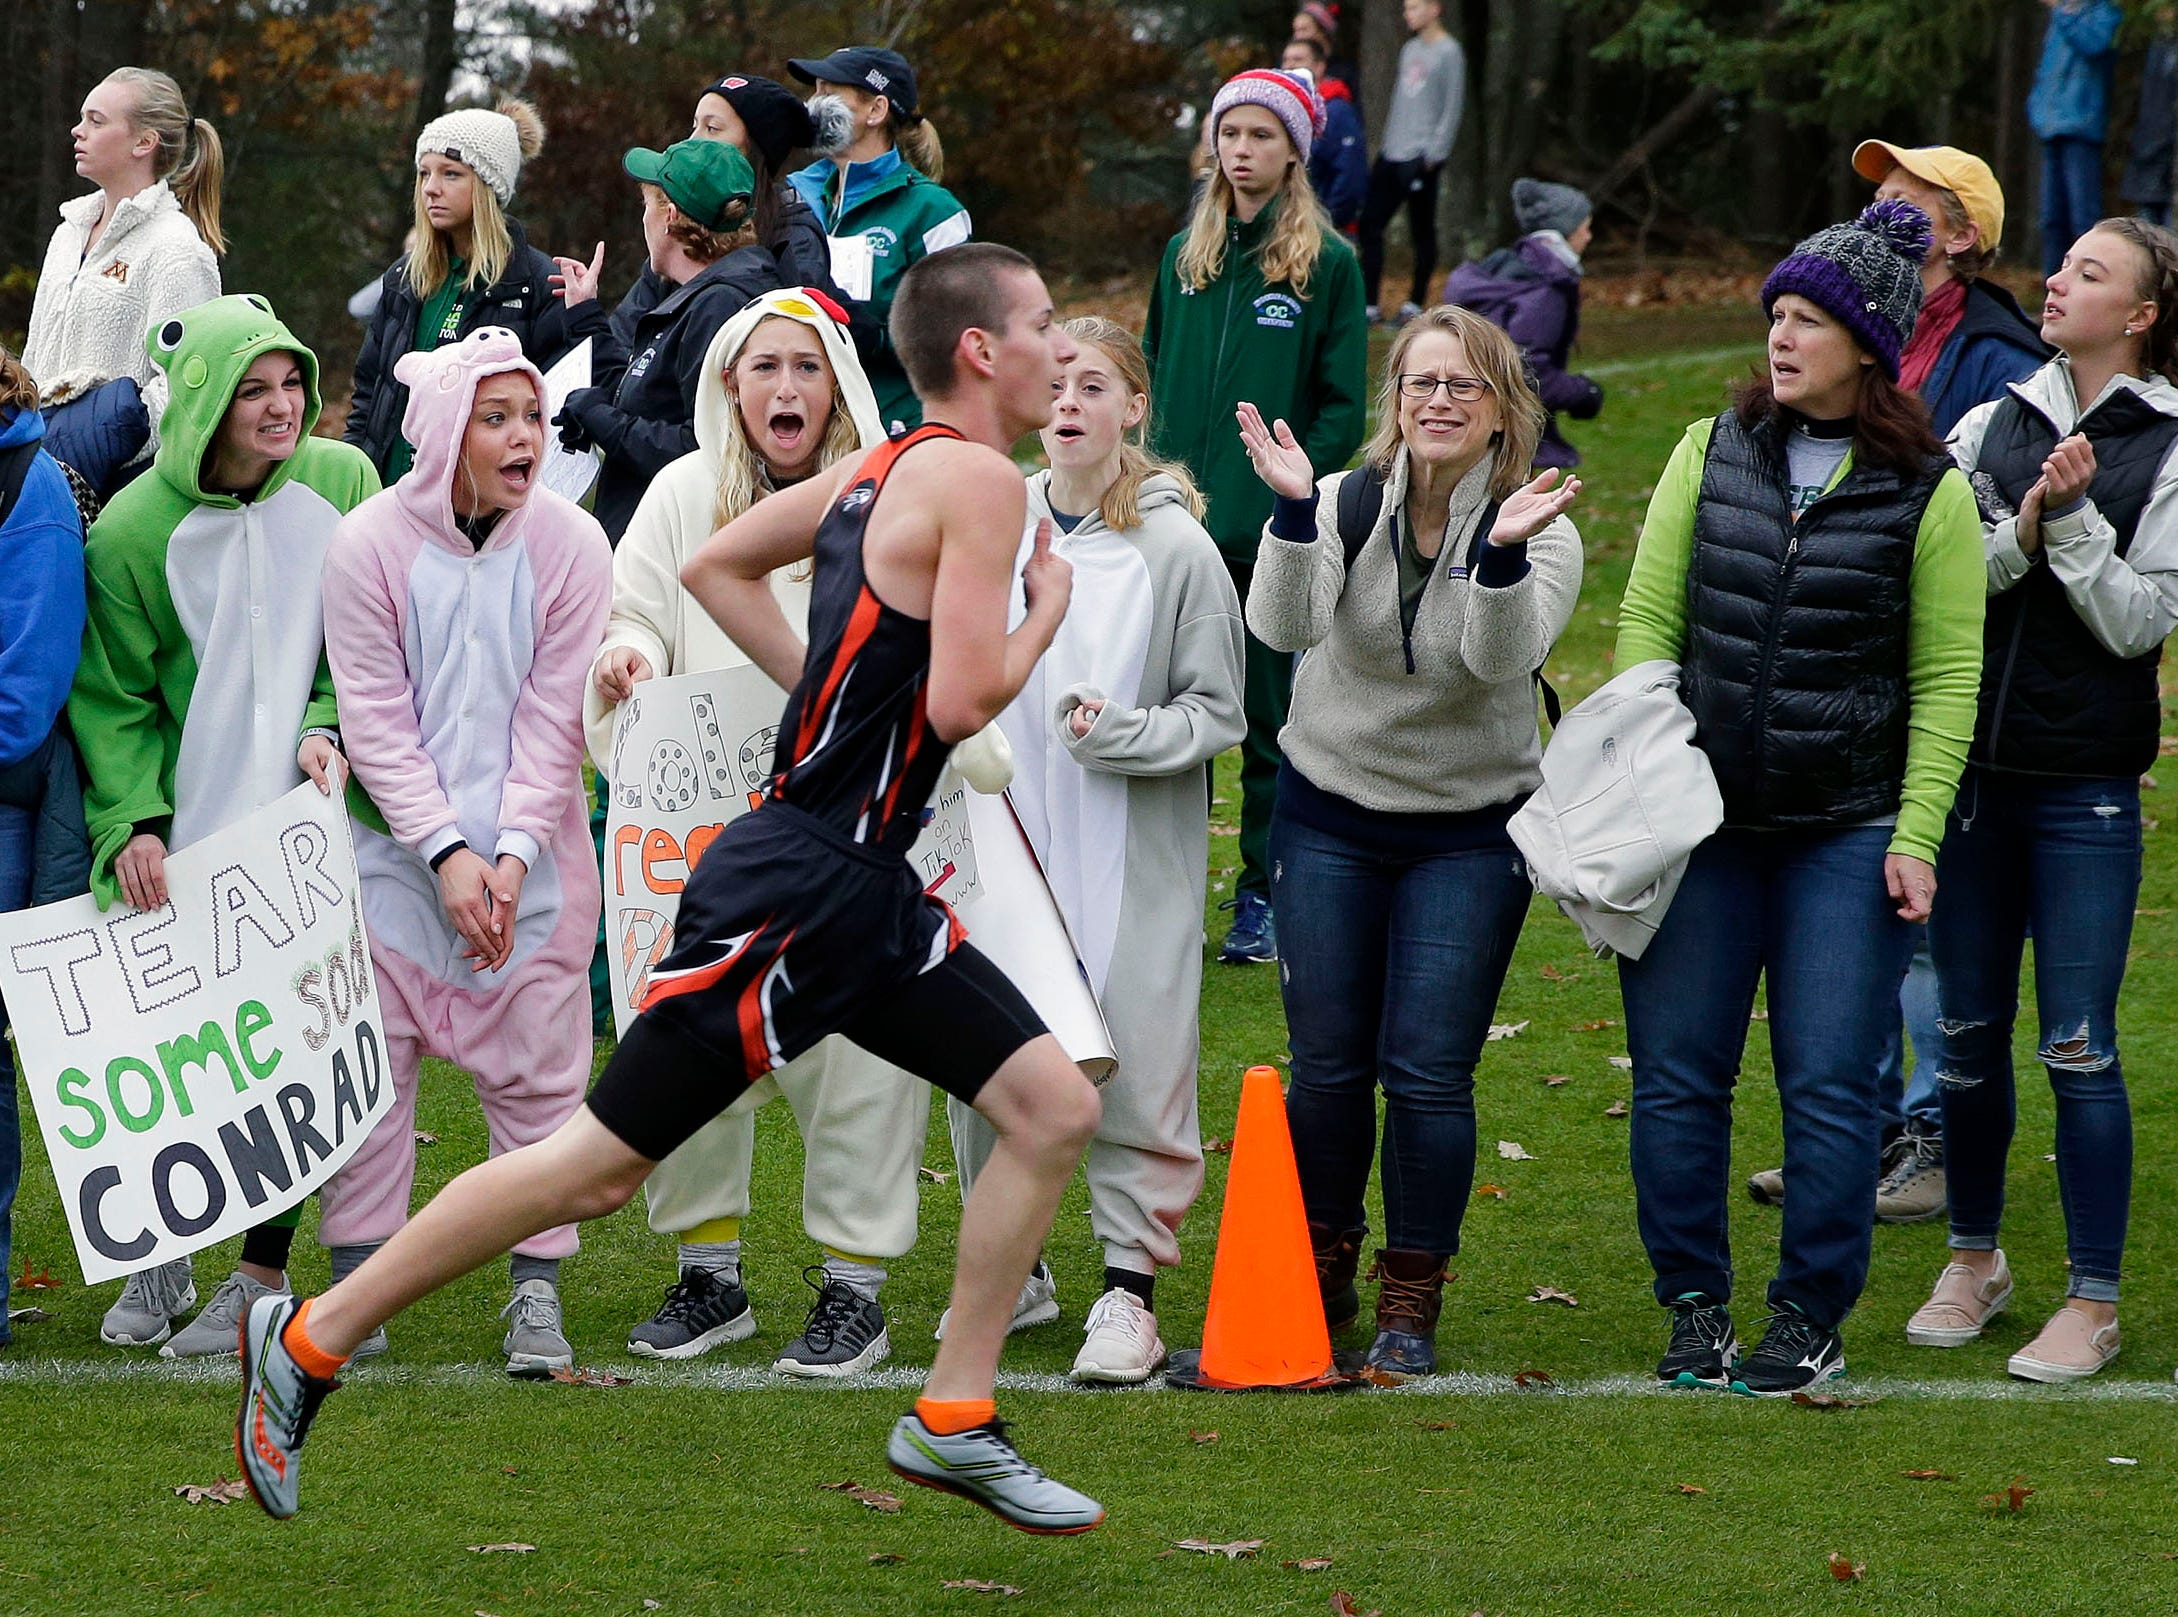 Fans, some oddly dressed in jeans and jackets, cheer for runners as the 2018 WIAA Cross Country State Meet takes place Saturday, October 27, 2018, at the Ridges Golf Course in Wisconsin Rapids, Wis.